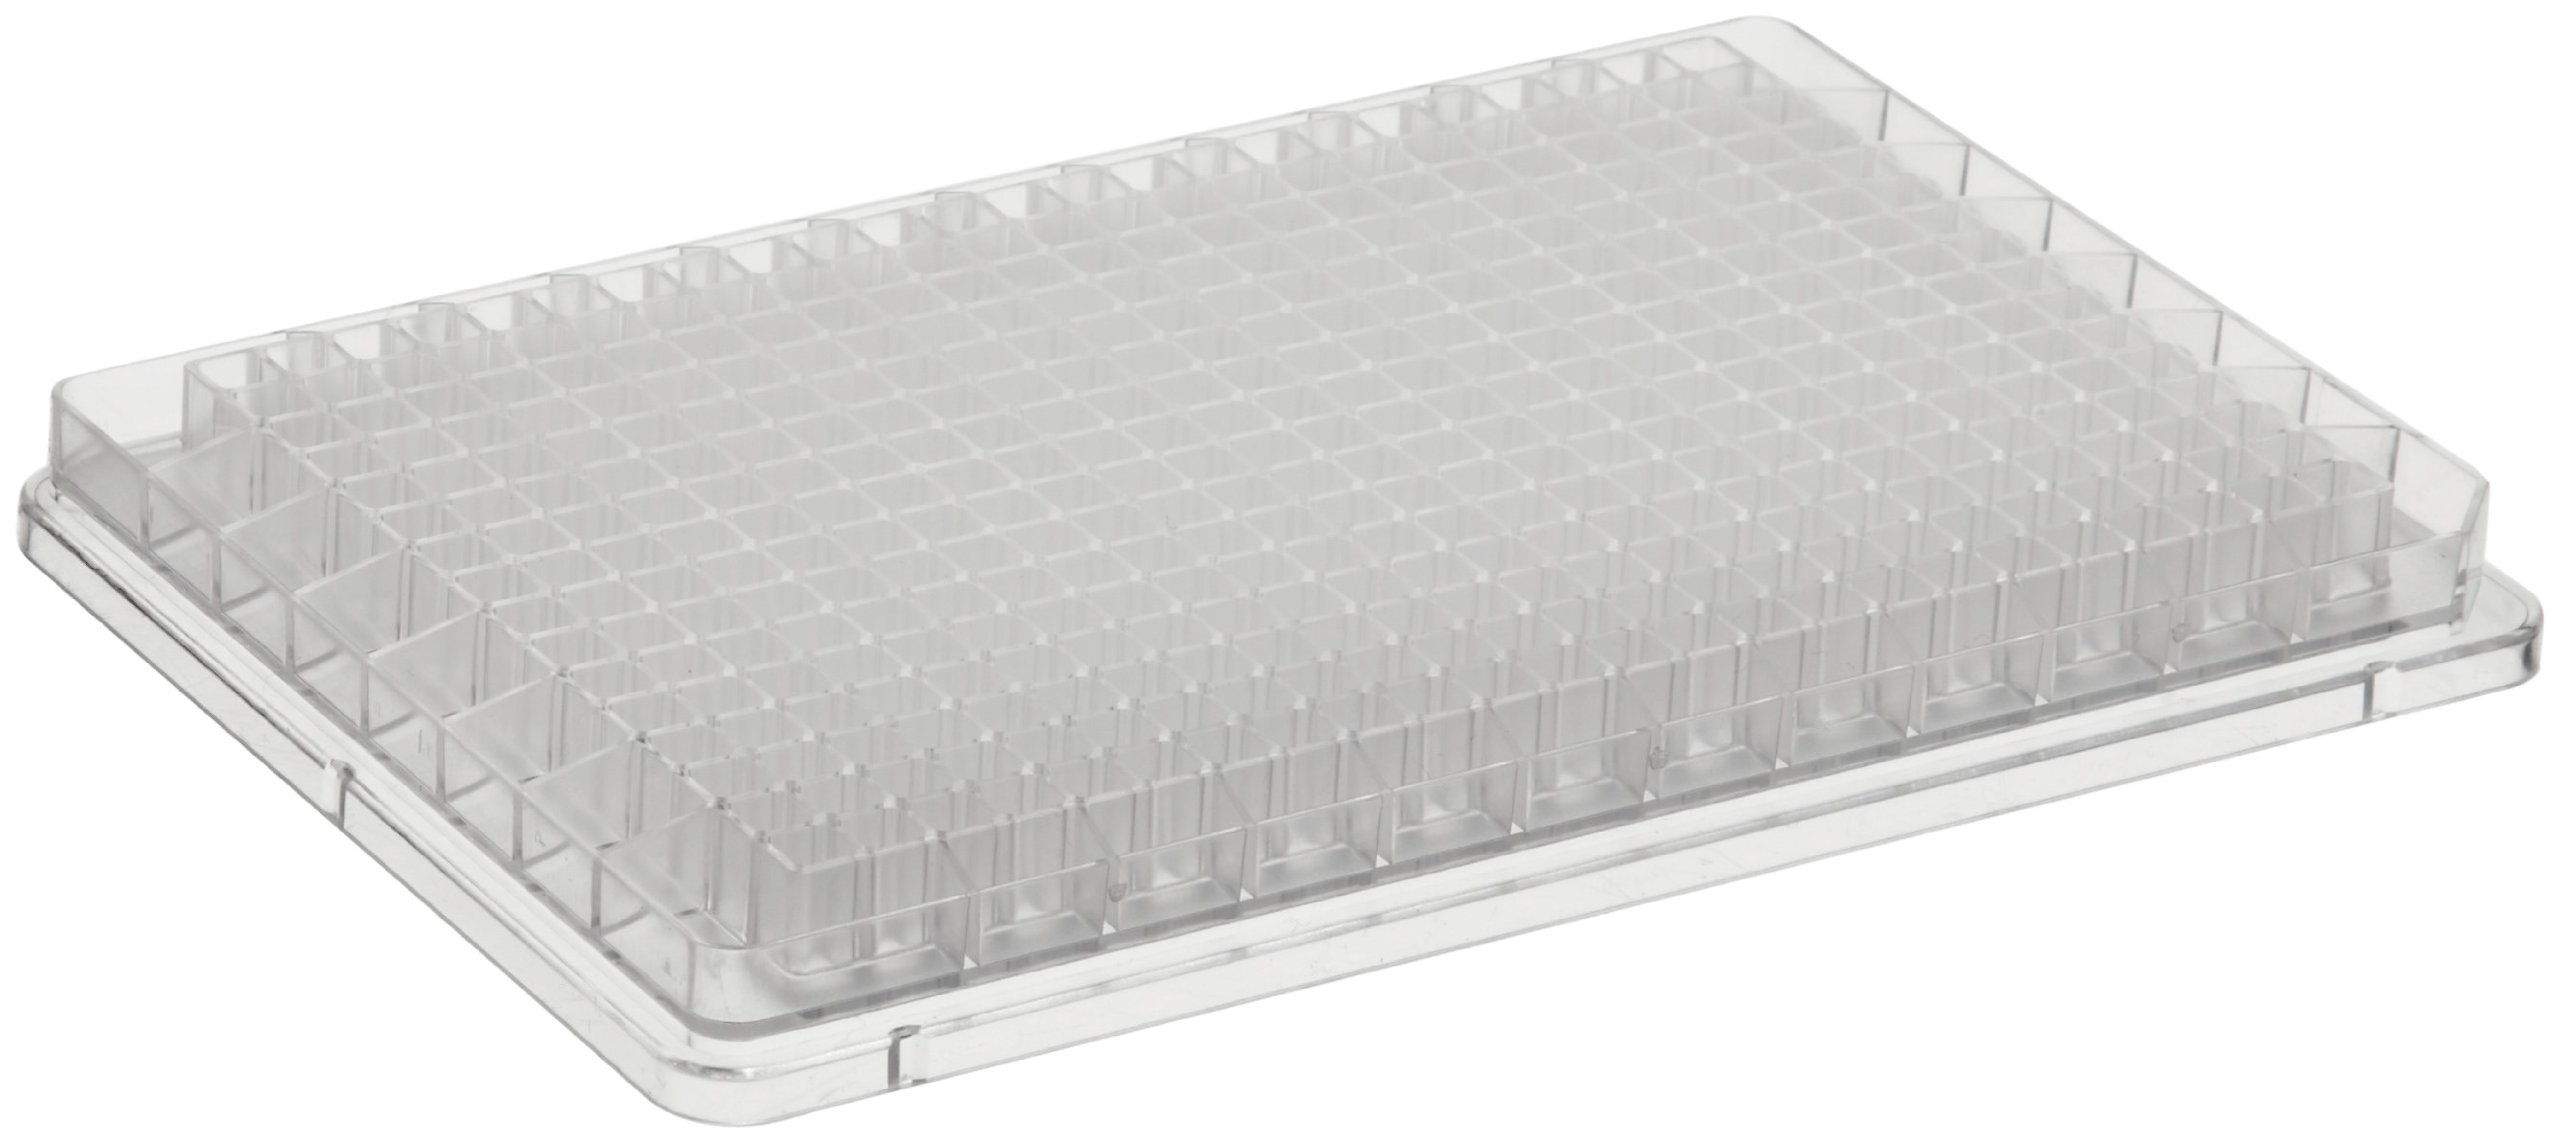 BrandTech 781620 Polystyrene F-Bottom 384 Well Brandplates Microplate, Non-Treated, 100 microliter Well Capacity, Transparent (Pack of 50)